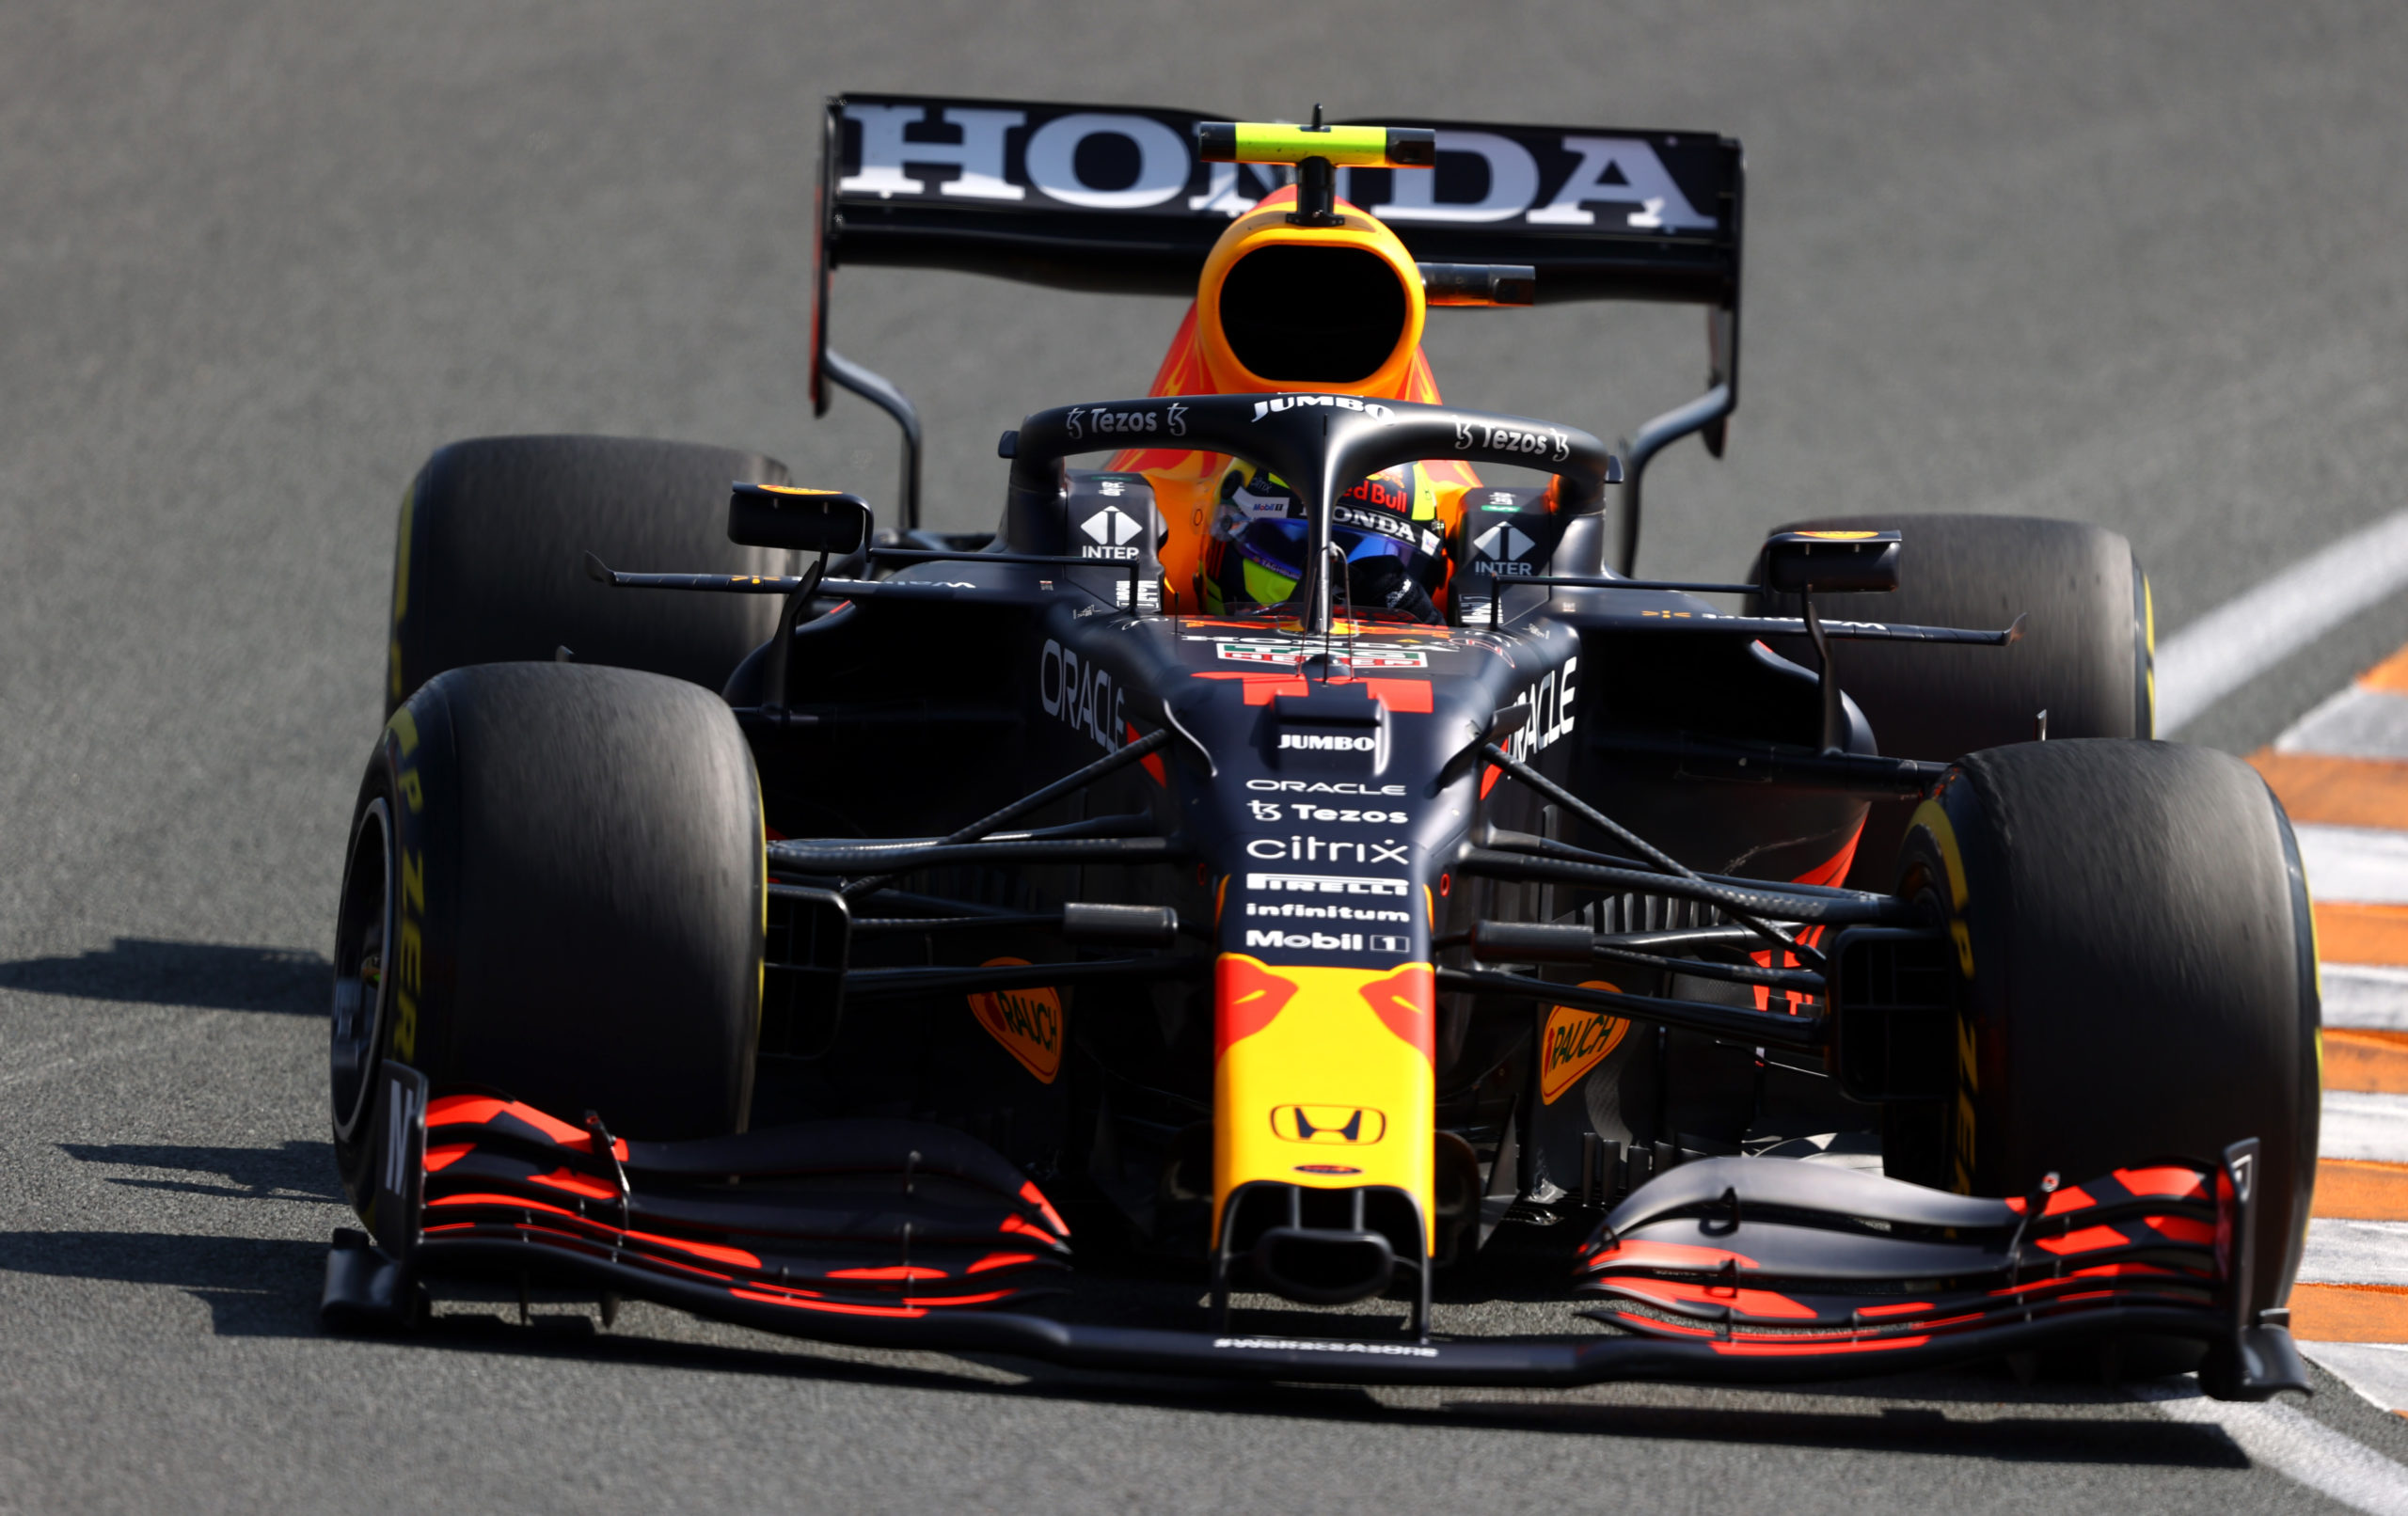 ZANDVOORT, NETHERLANDS - SEPTEMBER 04: Sergio Perez of Mexico driving the (11) Red Bull Racing RB16B Honda during final practice ahead of the F1 Grand Prix of The Netherlands at Circuit Zandvoort on September 04, 2021 in Zandvoort, Netherlands. (Photo by Bryn Lennon/Getty Images) // Getty Images / Red Bull Content Pool  // SI202109040240 // Usage for editorial use only //